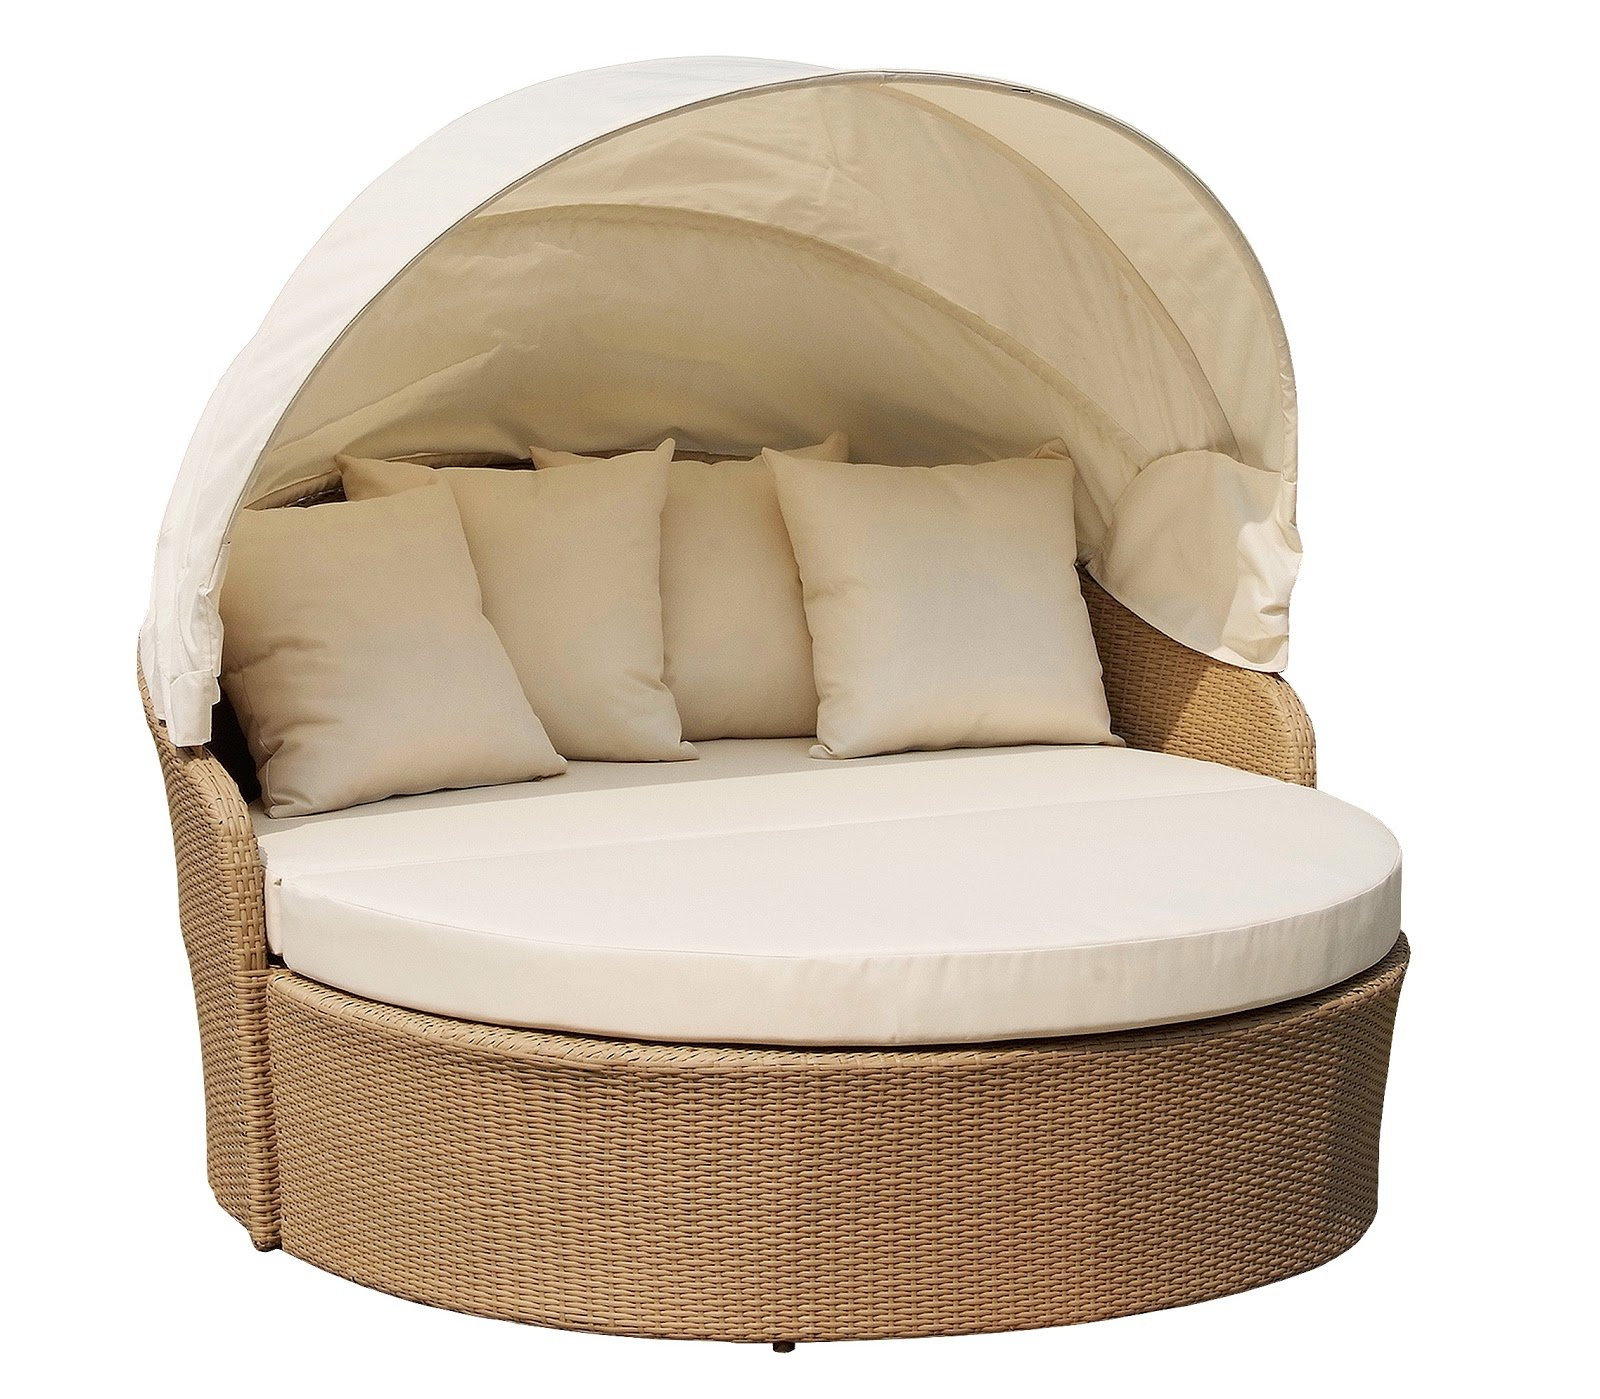 Grosvenor Bamboo Patio Daybeds With Cushions Within Most Recently Released Woolery Canopy Daybed With Cushions (View 9 of 20)